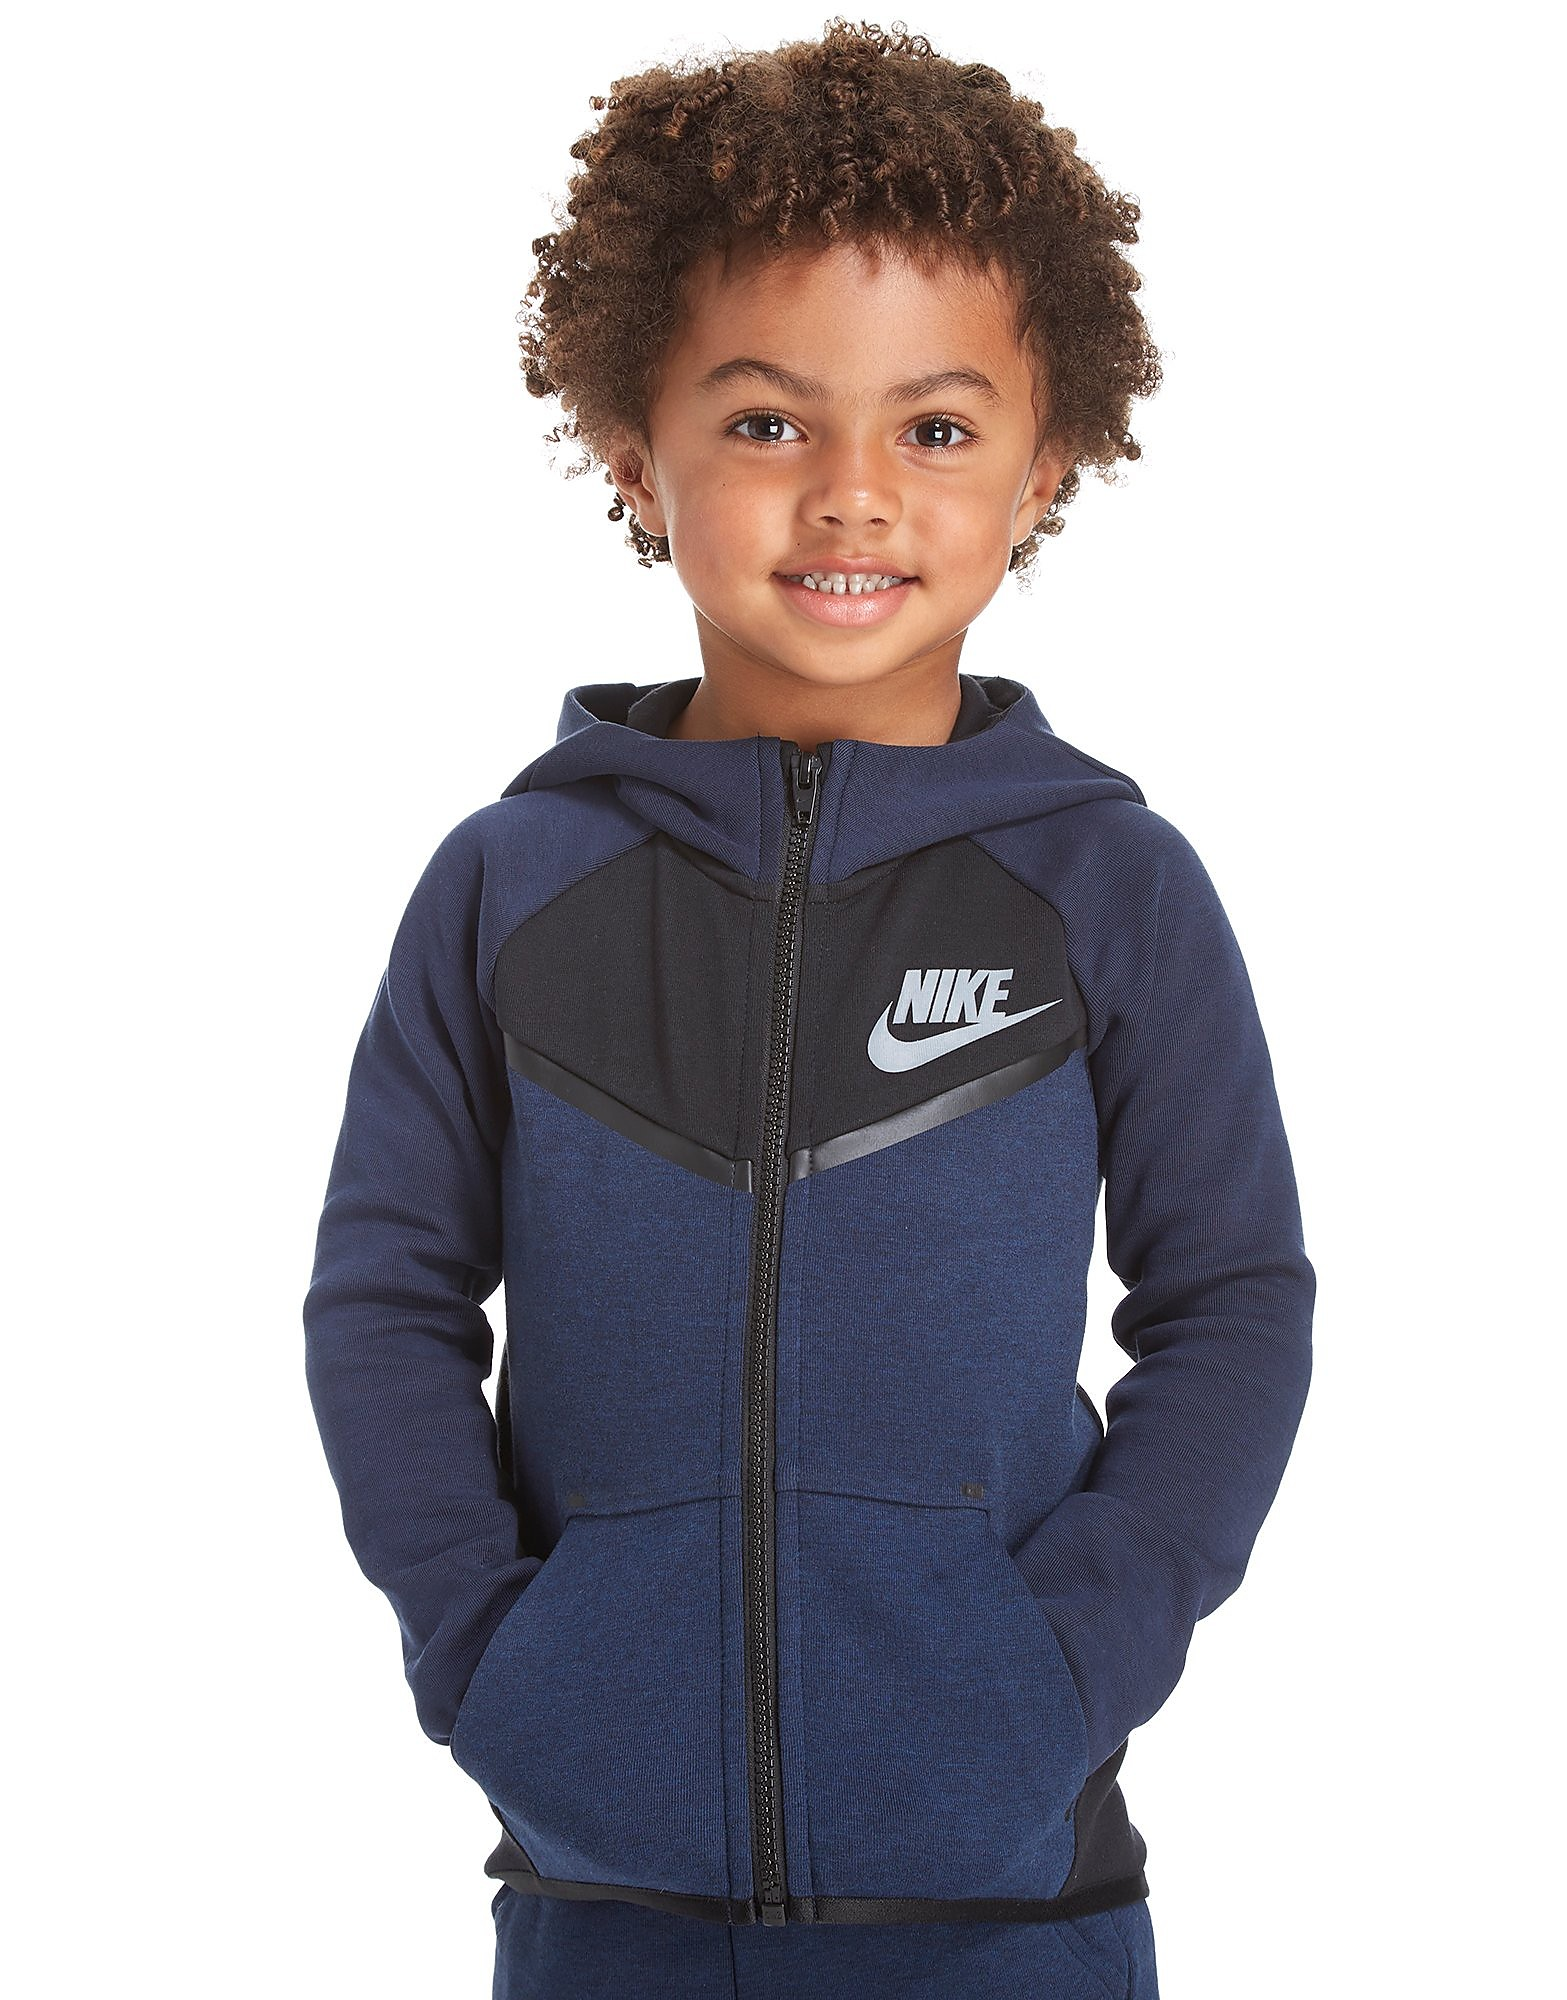 Nike SB Tech Fleece Full Zip Hoody Children